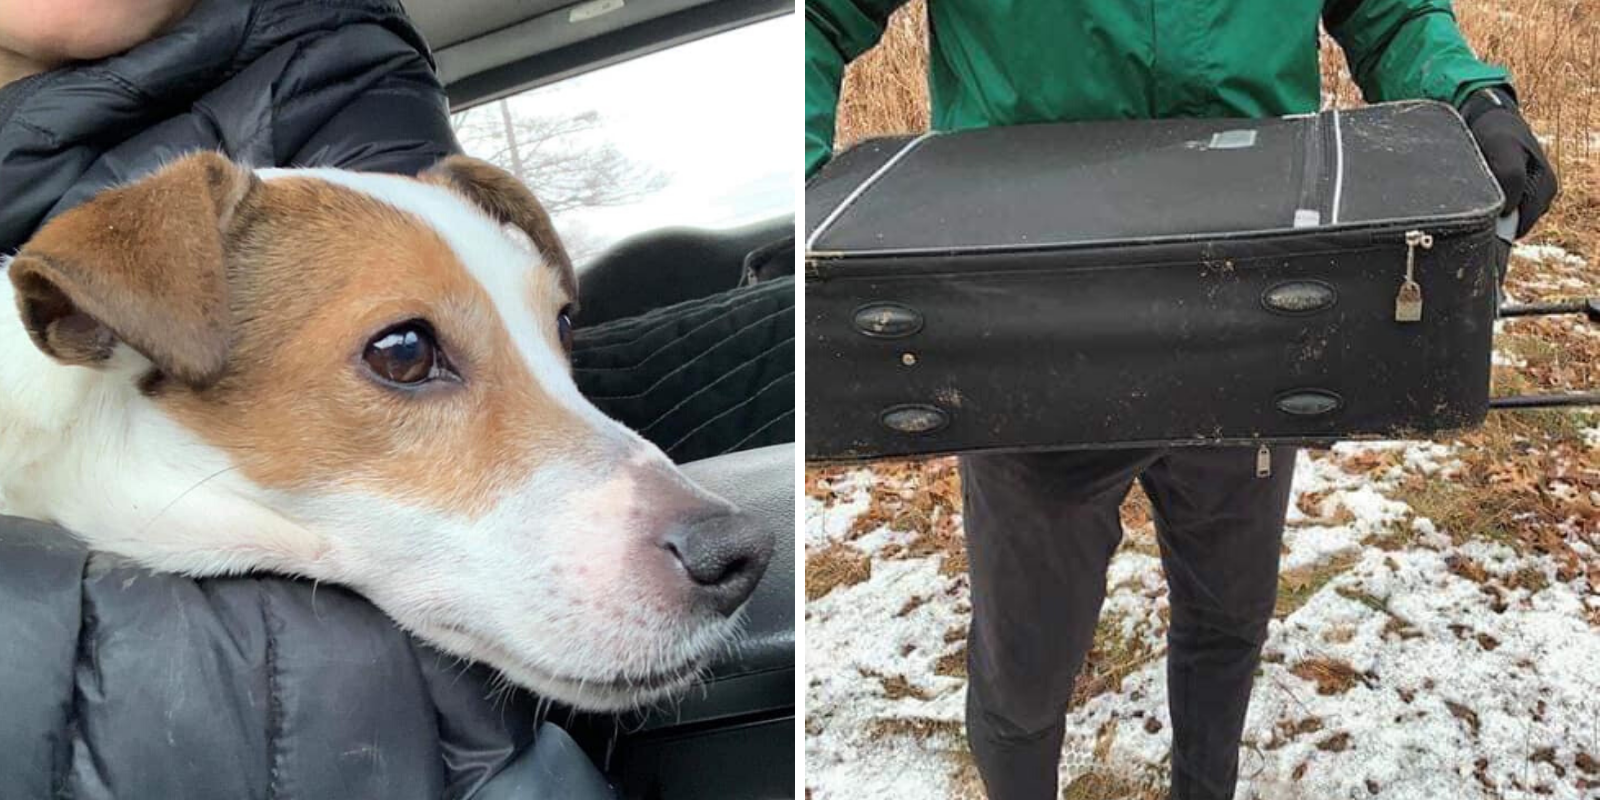 Toronto dog 'in good health' after being found in suitcase by joggers